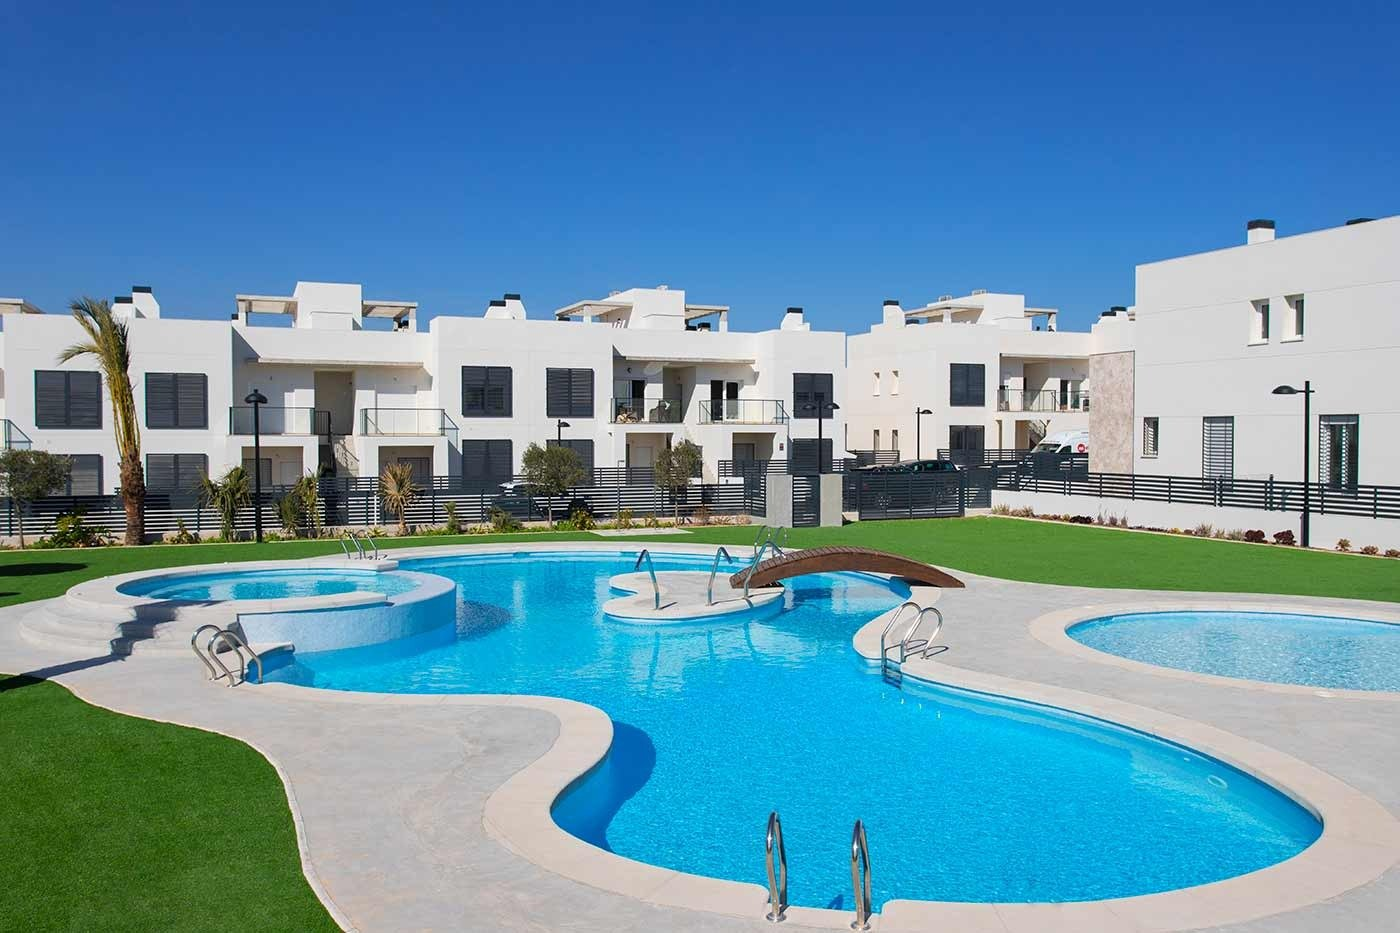 New build groundfloor and topfloor apartments for sale in Aguas Nuevas, Torrevieja.